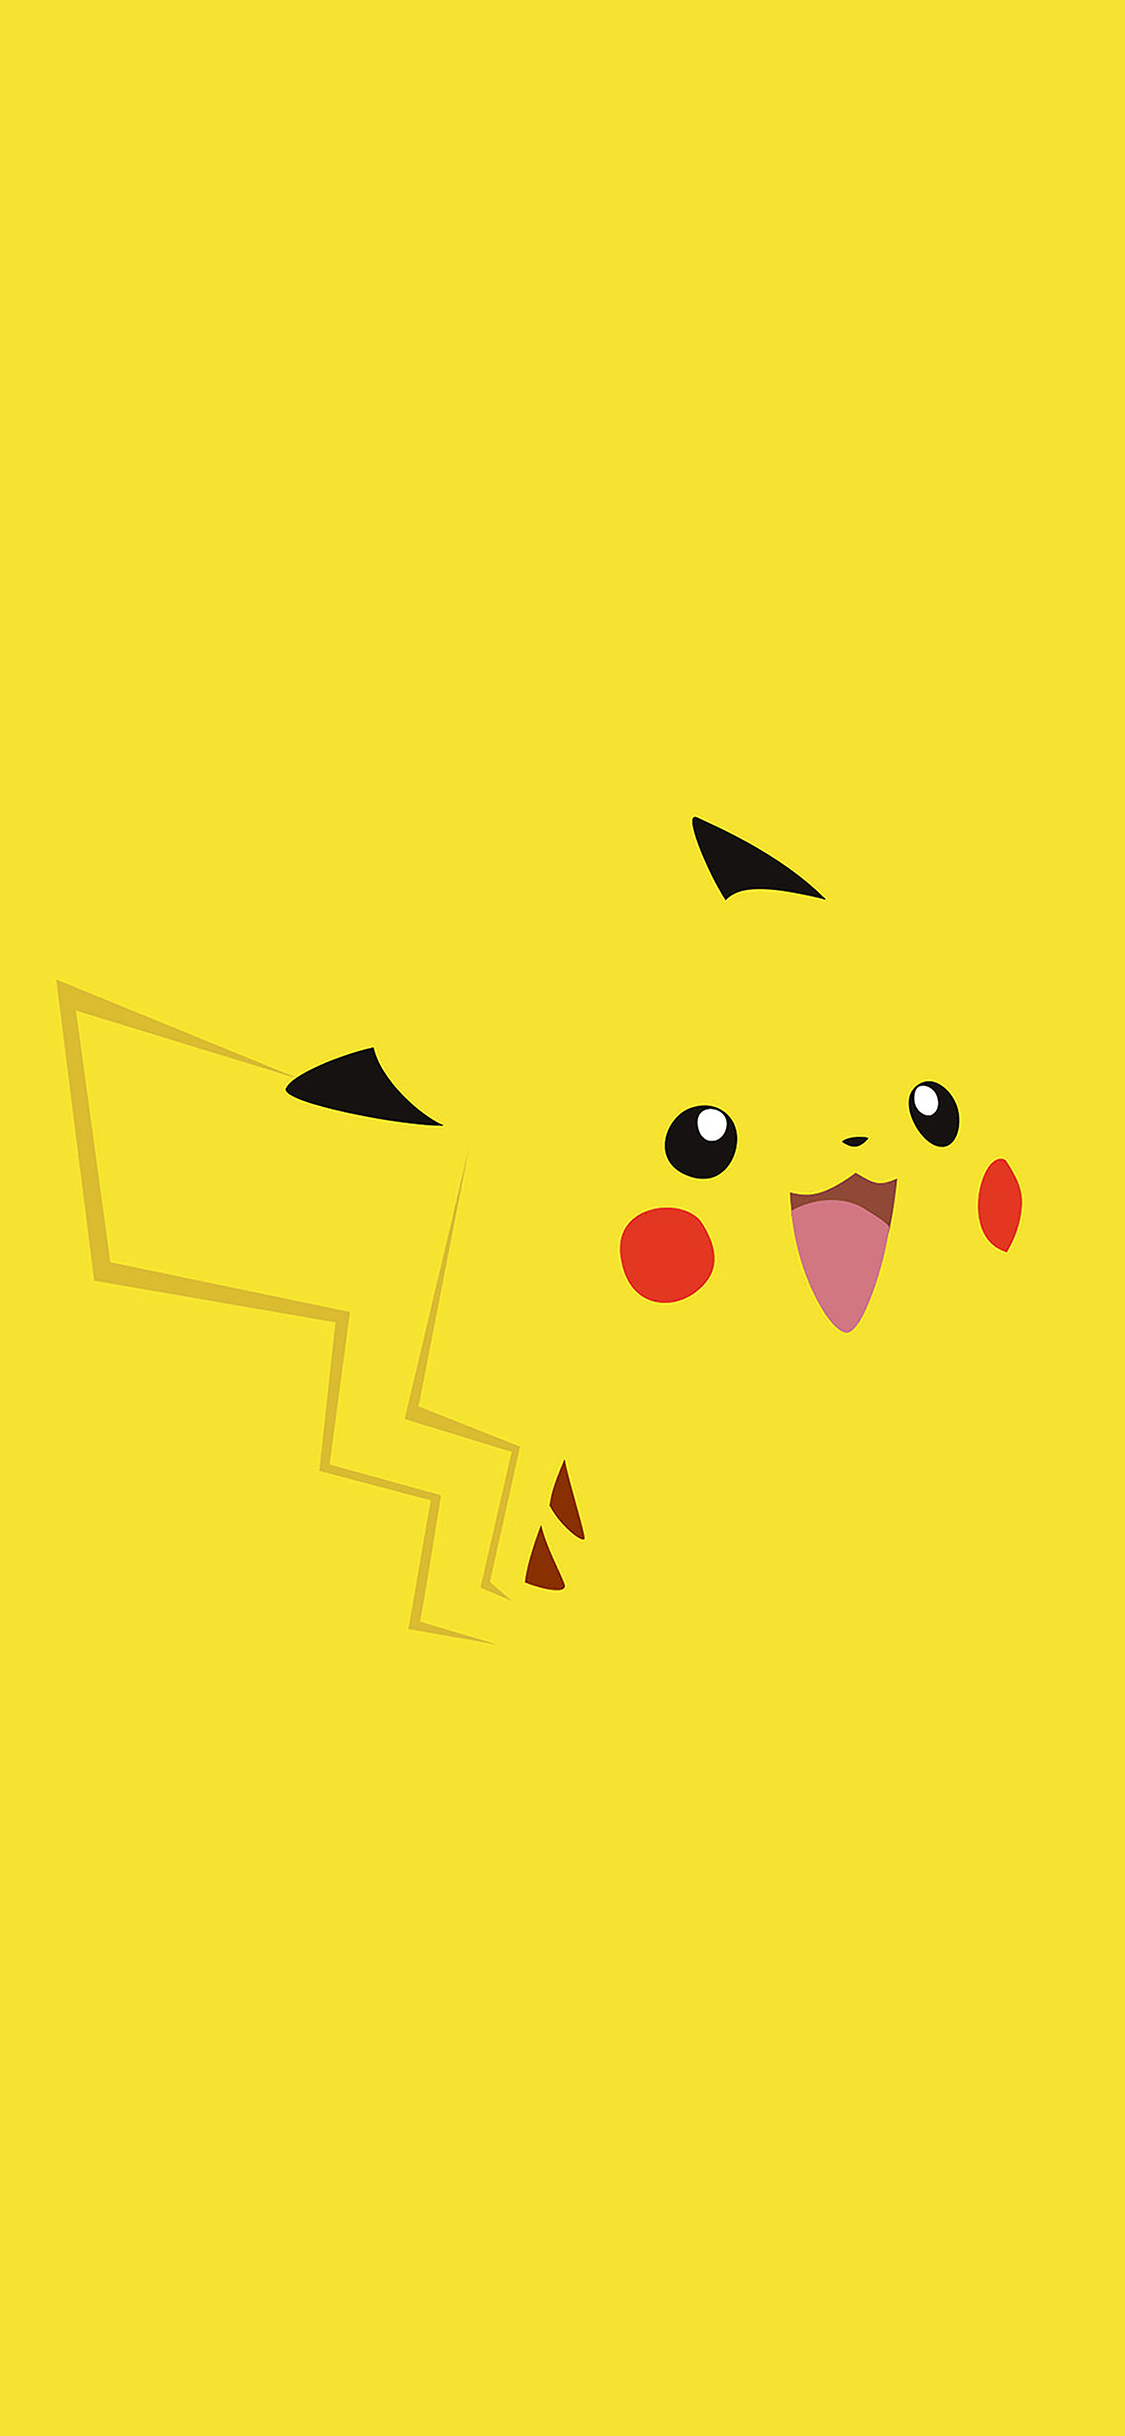 Iphone X Wallpaper For Note 8 Aa35 Pika Pikachu Illust Minimal Art Papers Co